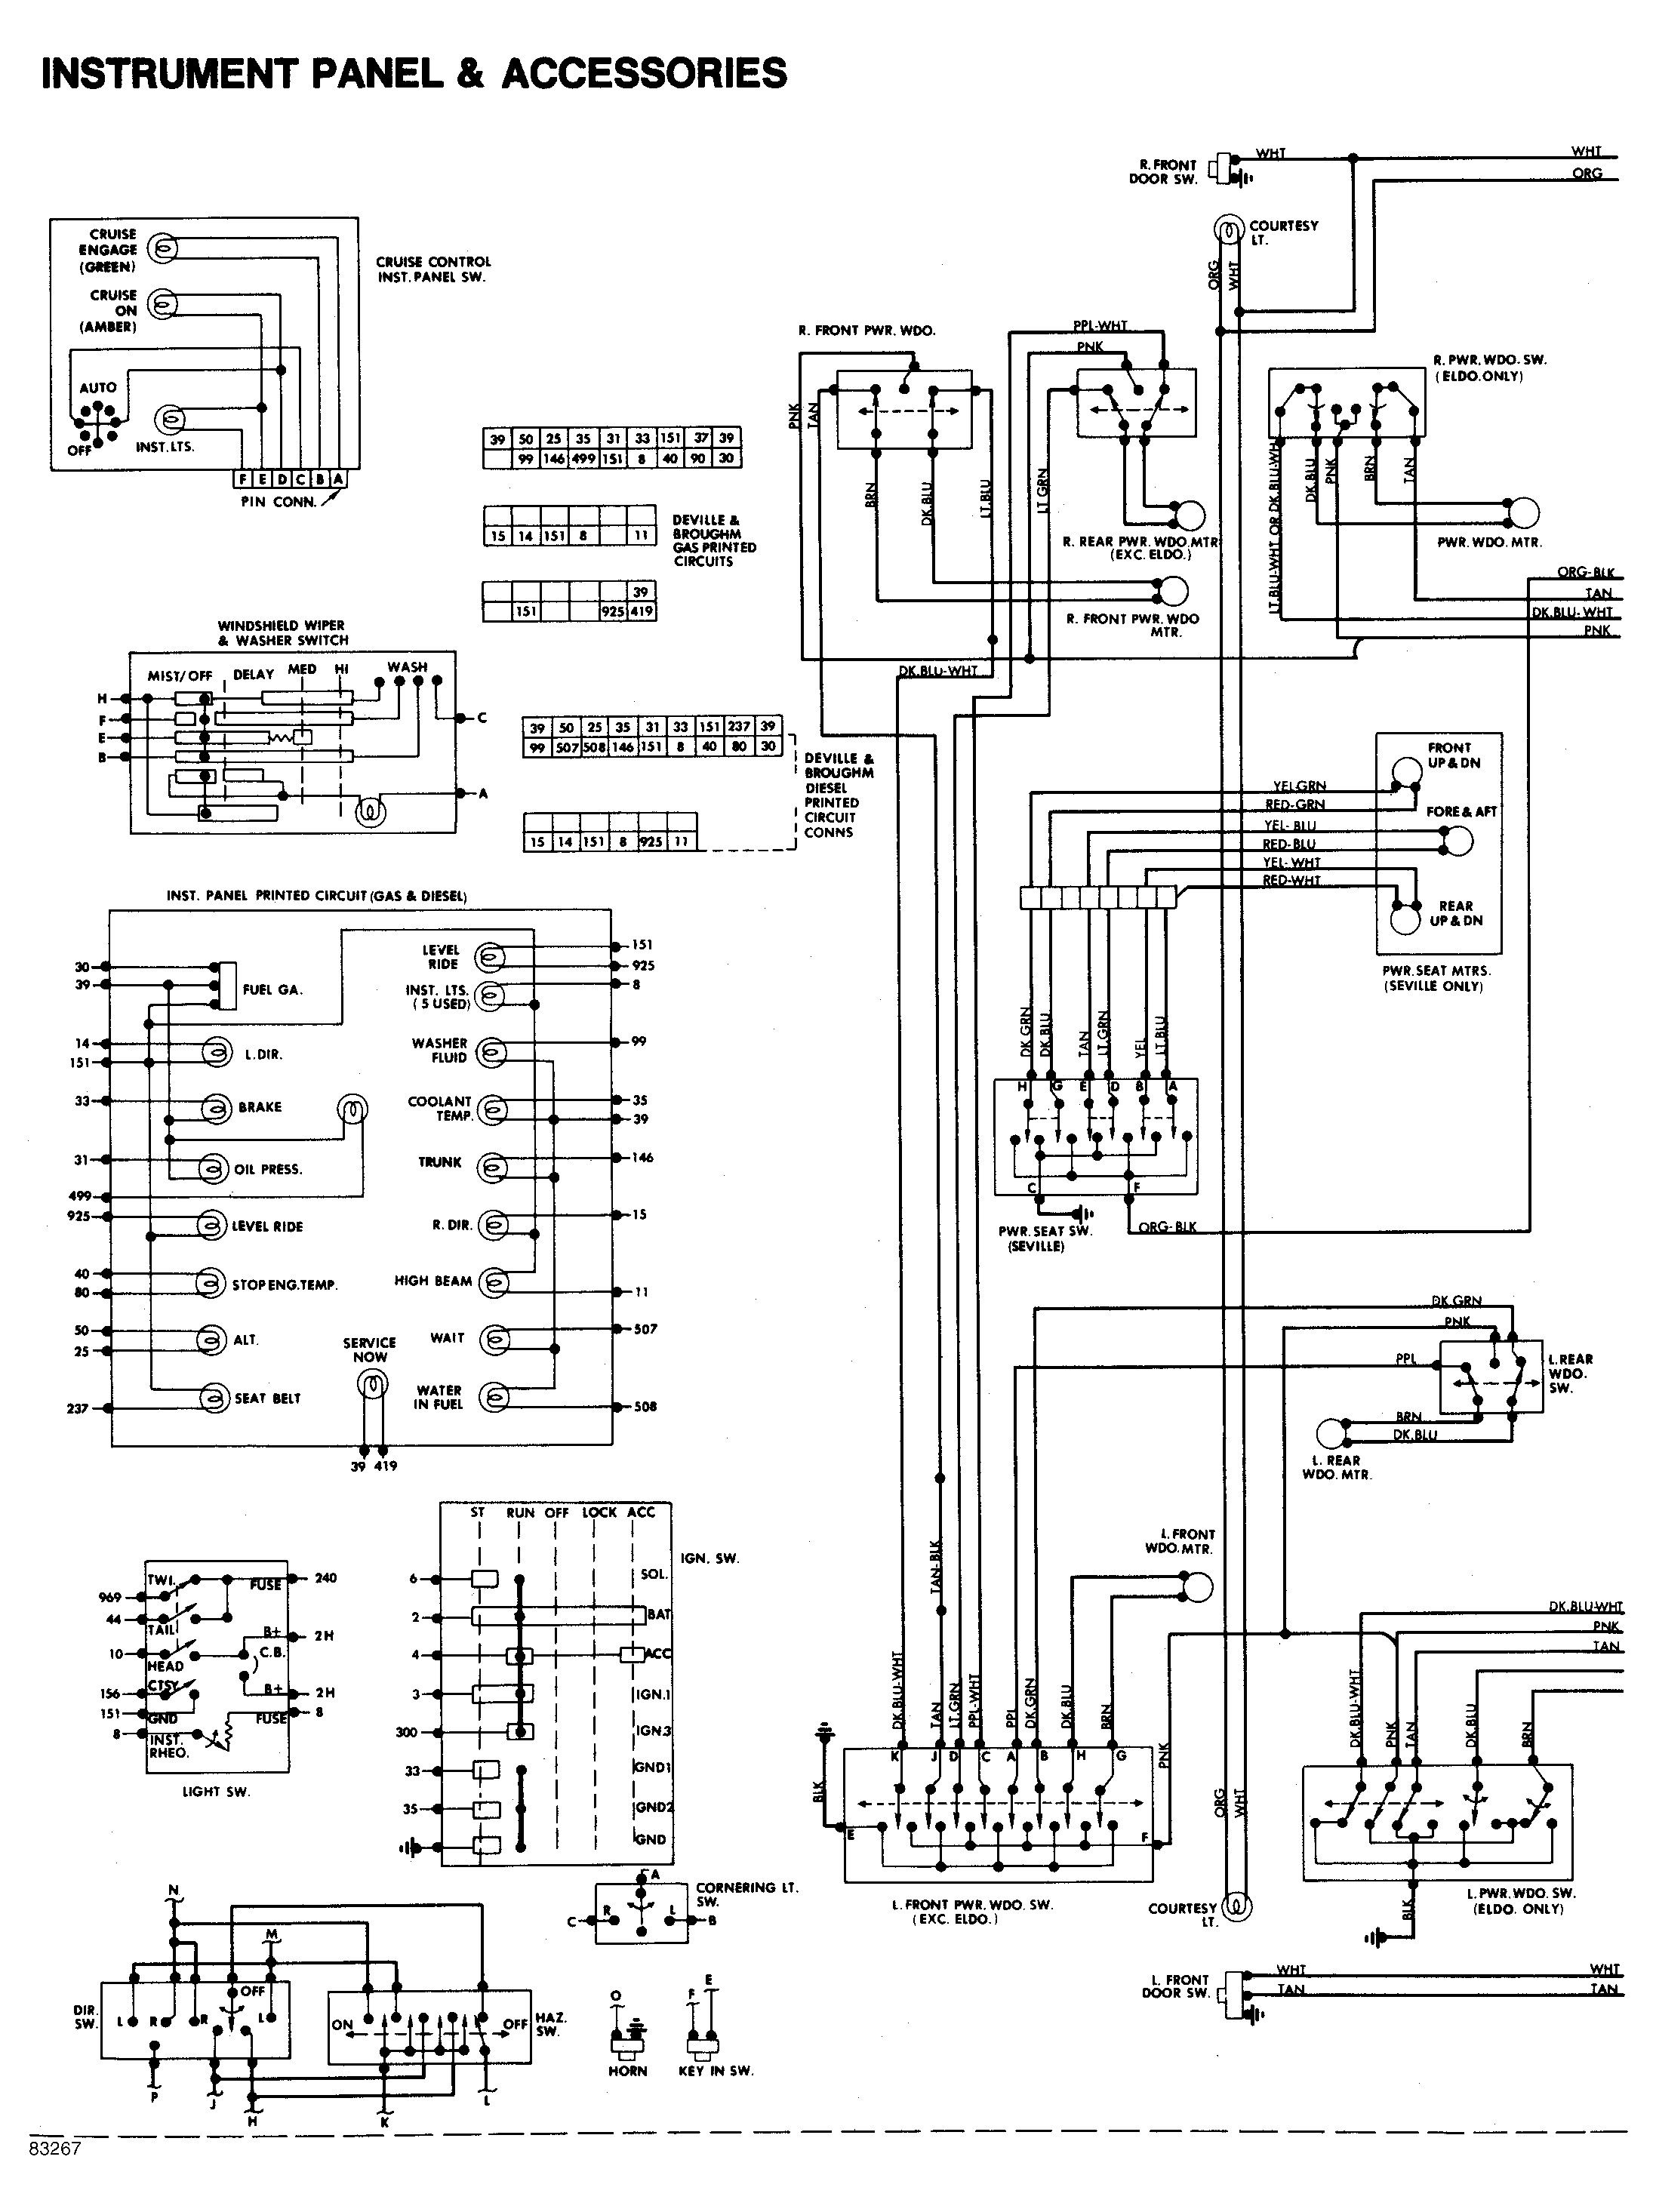 daewoo wiring diagram radio wiring diagram week 2000 honda accord radio wiring diagram fresh daewoo leganza [ 2194 x 2931 Pixel ]